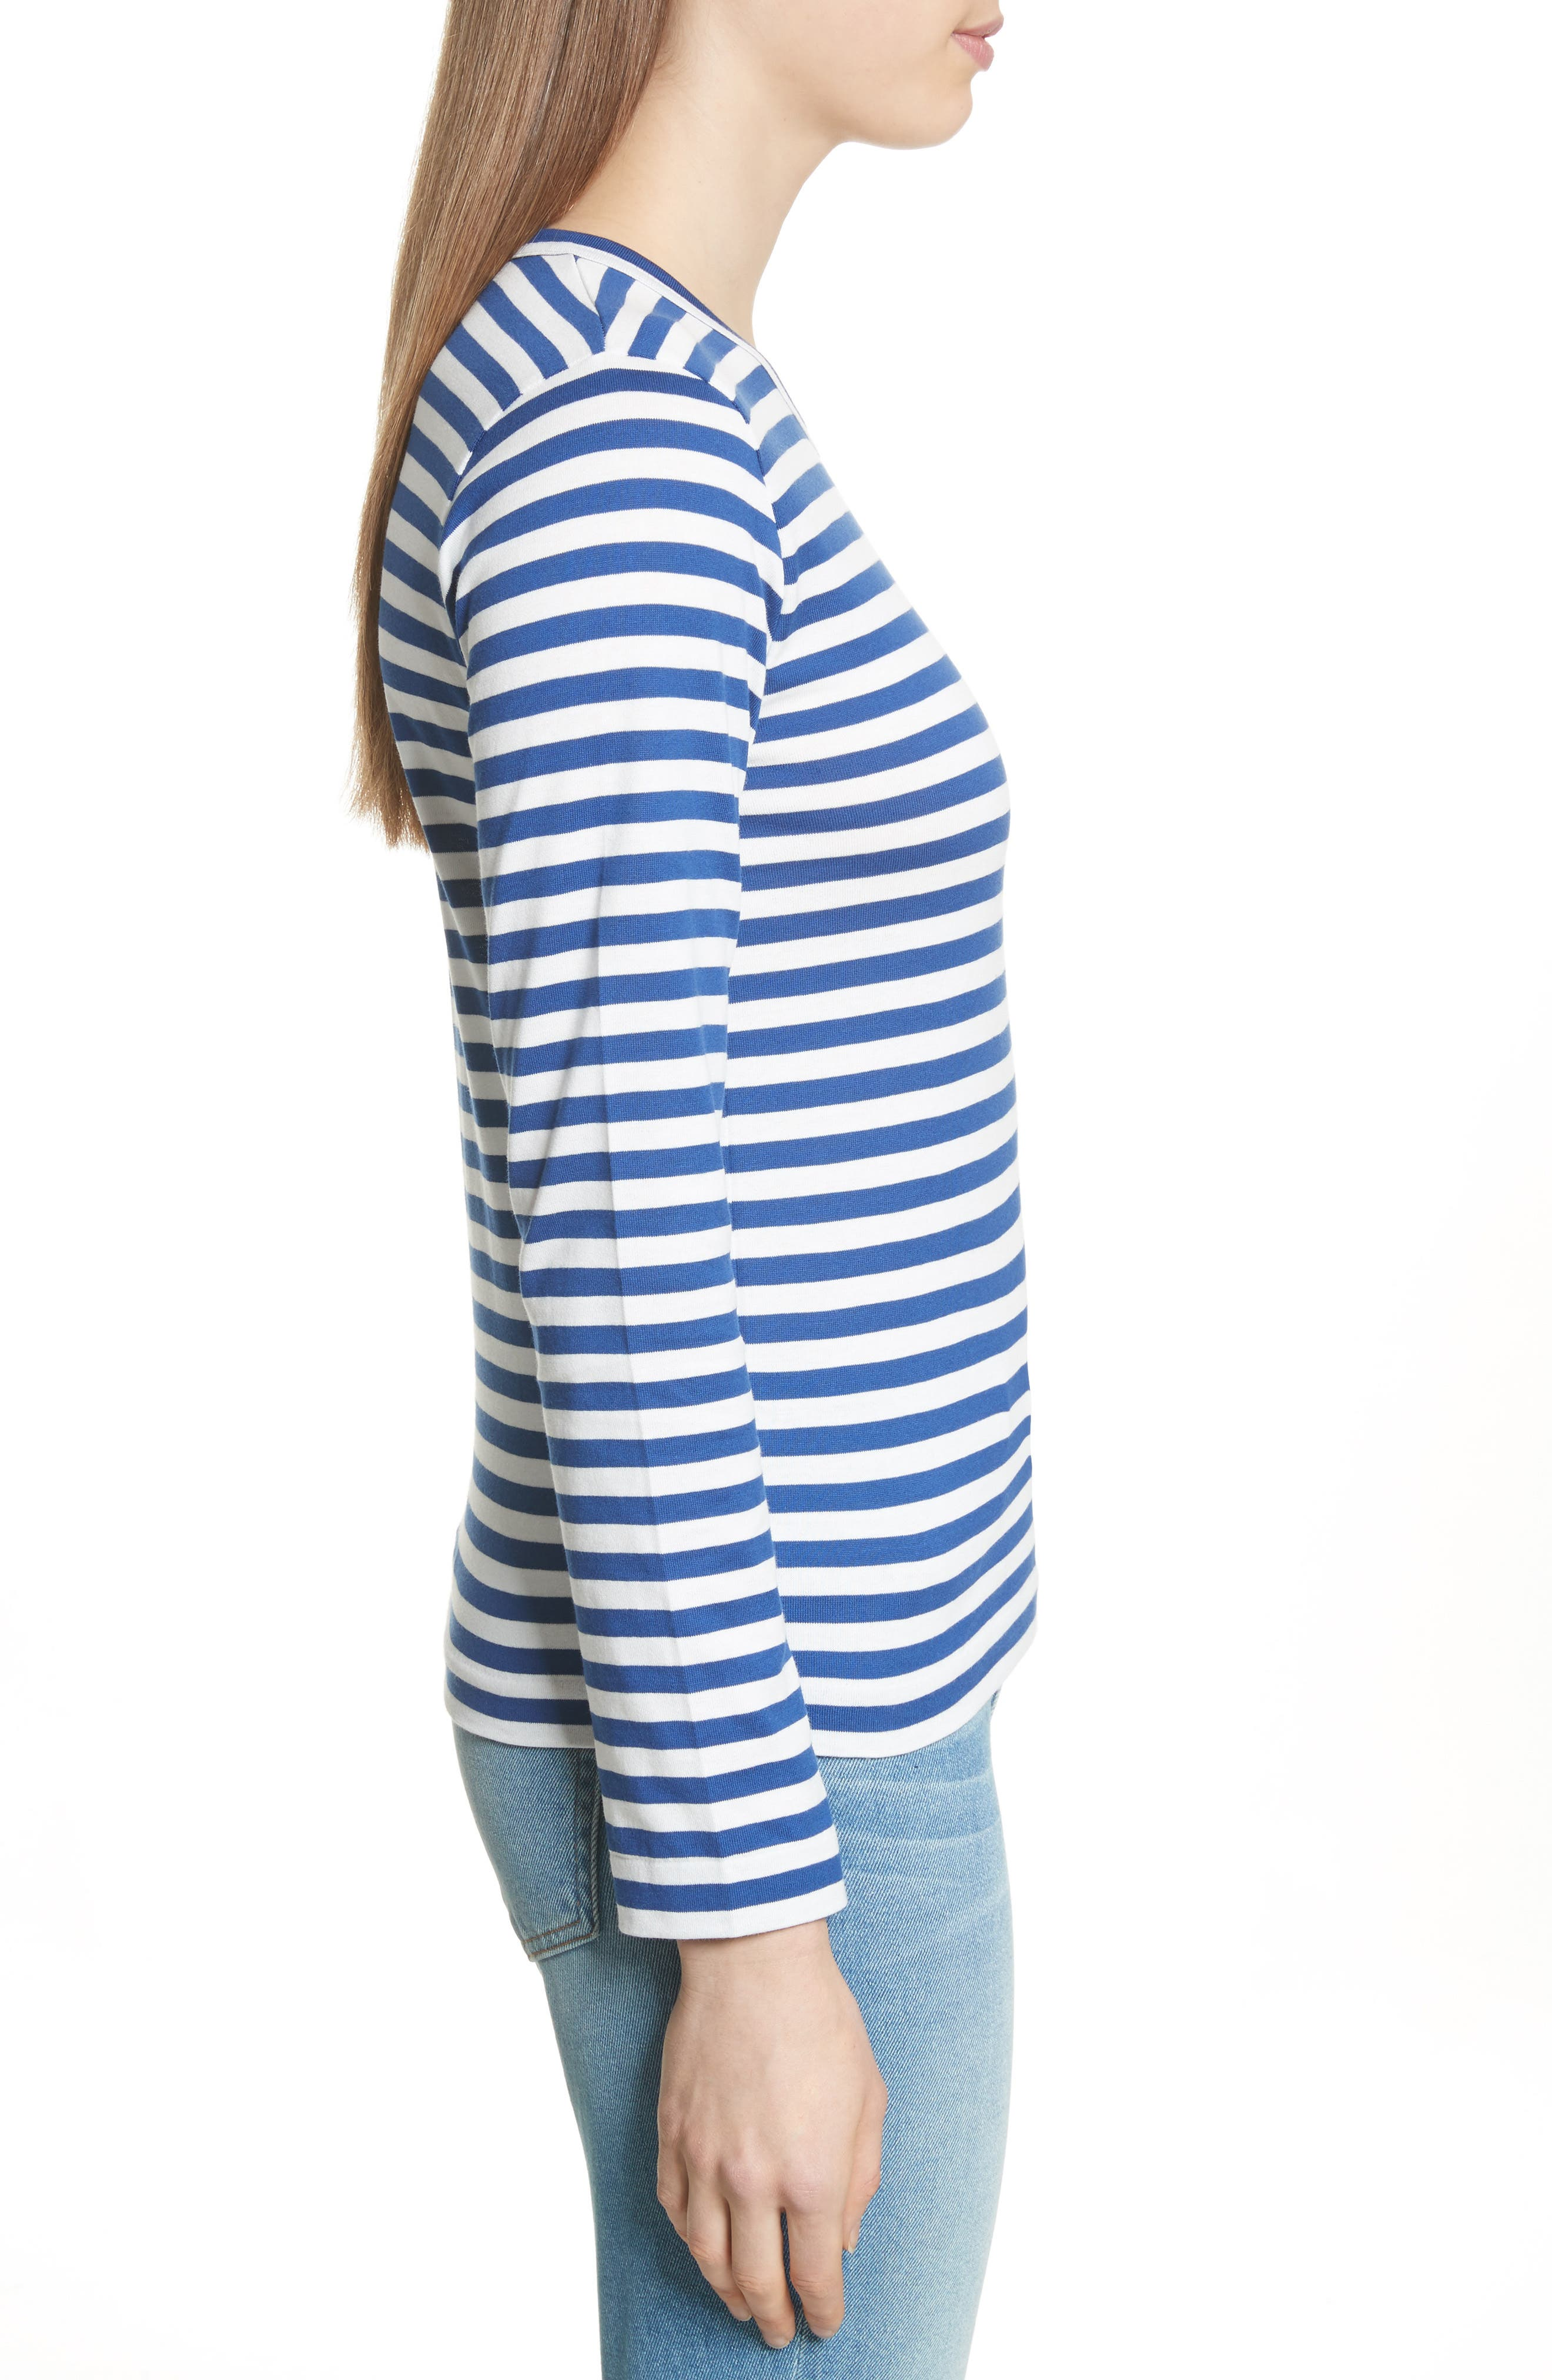 Comme des Garçons PLAY Stripe Cotton Tee,                             Alternate thumbnail 3, color,                             Navy/ White